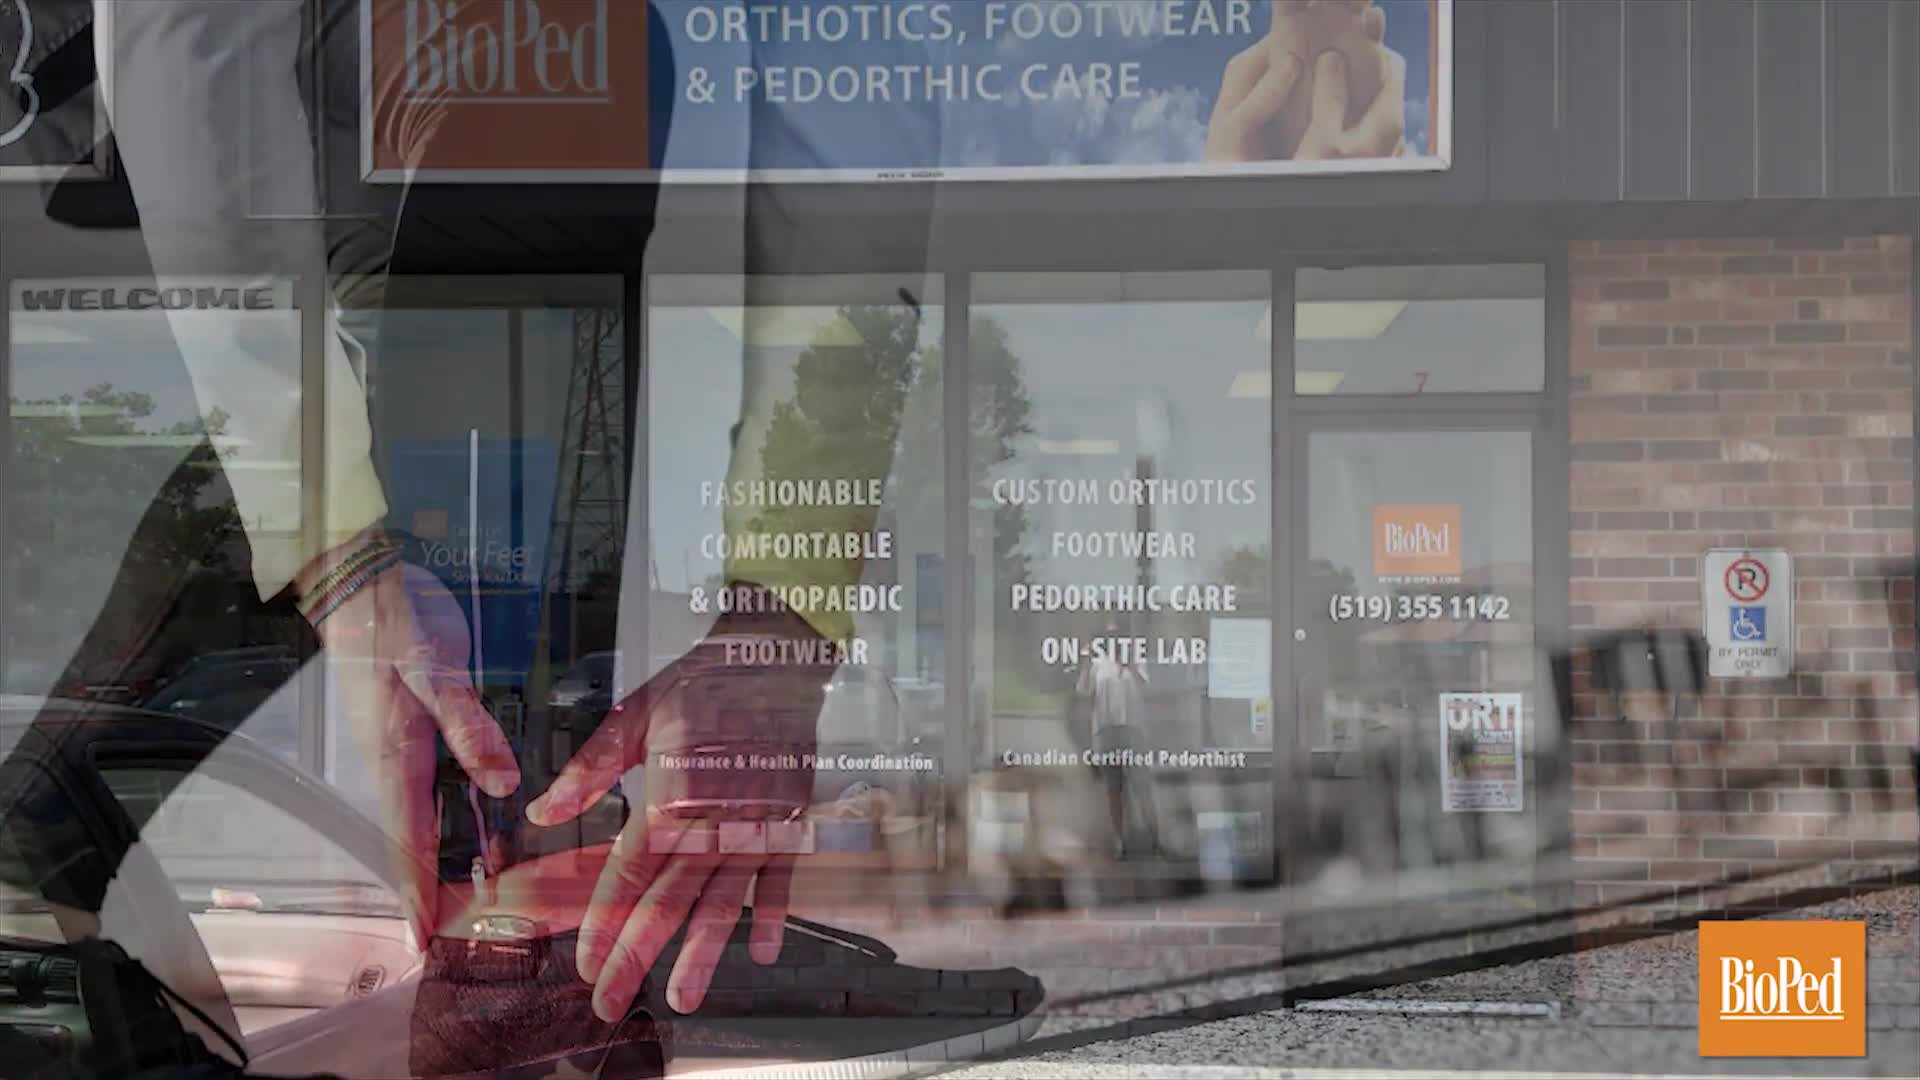 BioPed - Shoe Stores - 5193551142